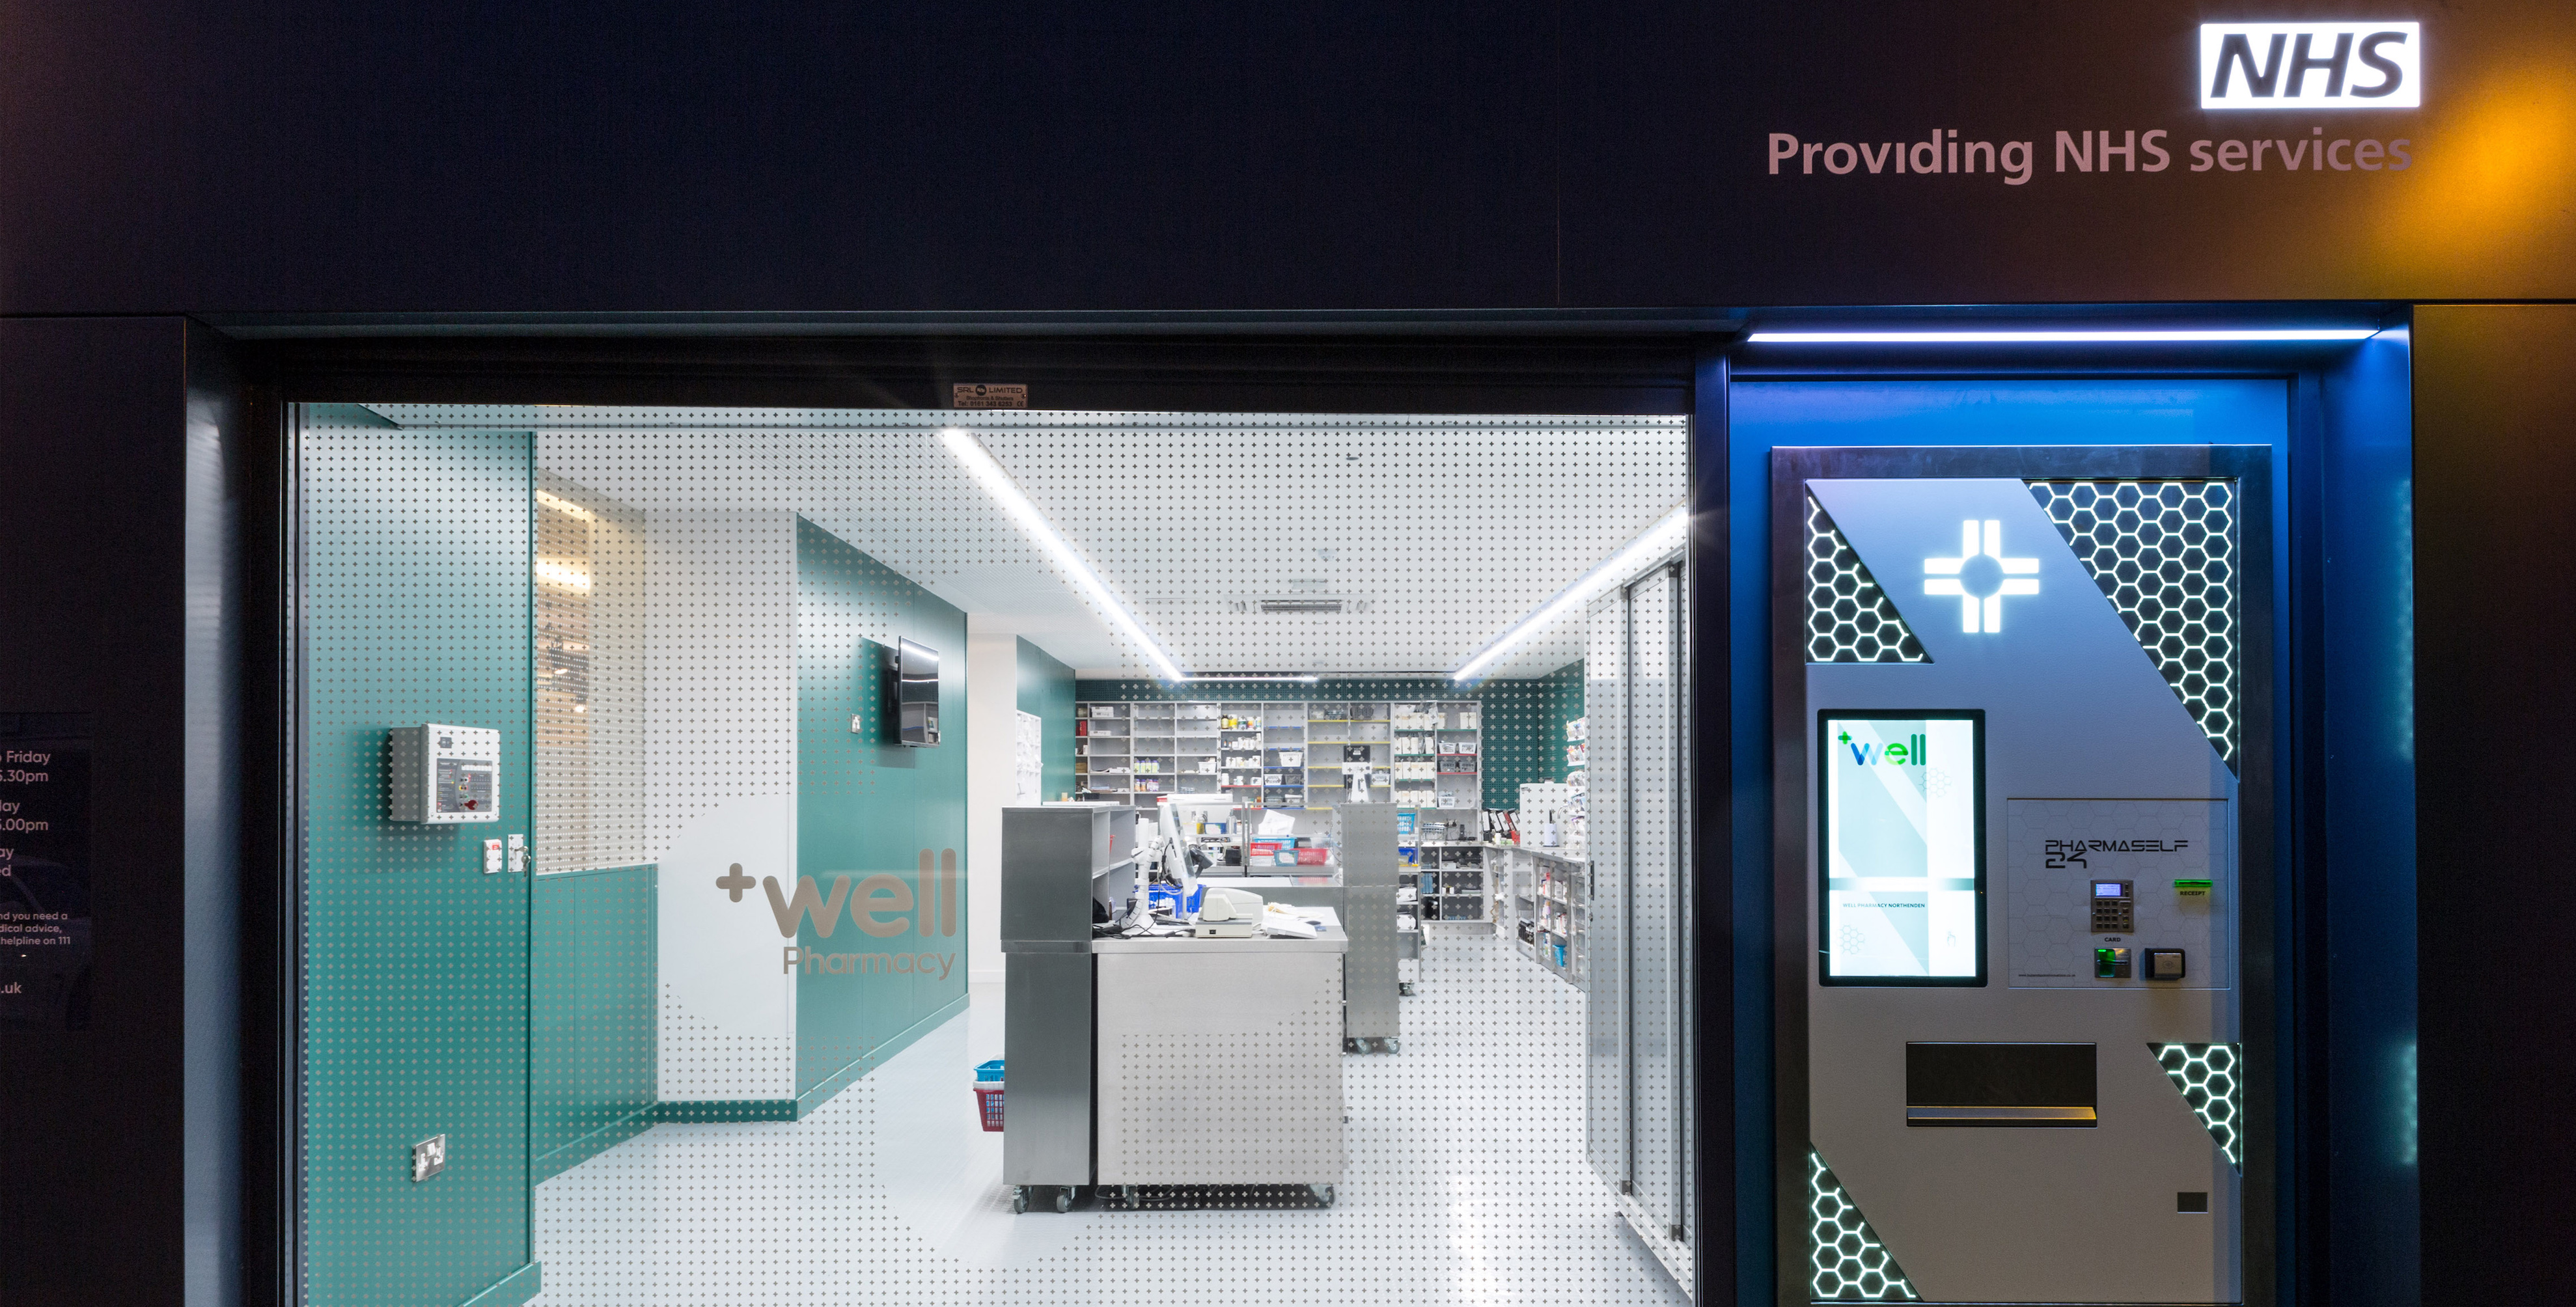 Well Pharmacy - Manchester